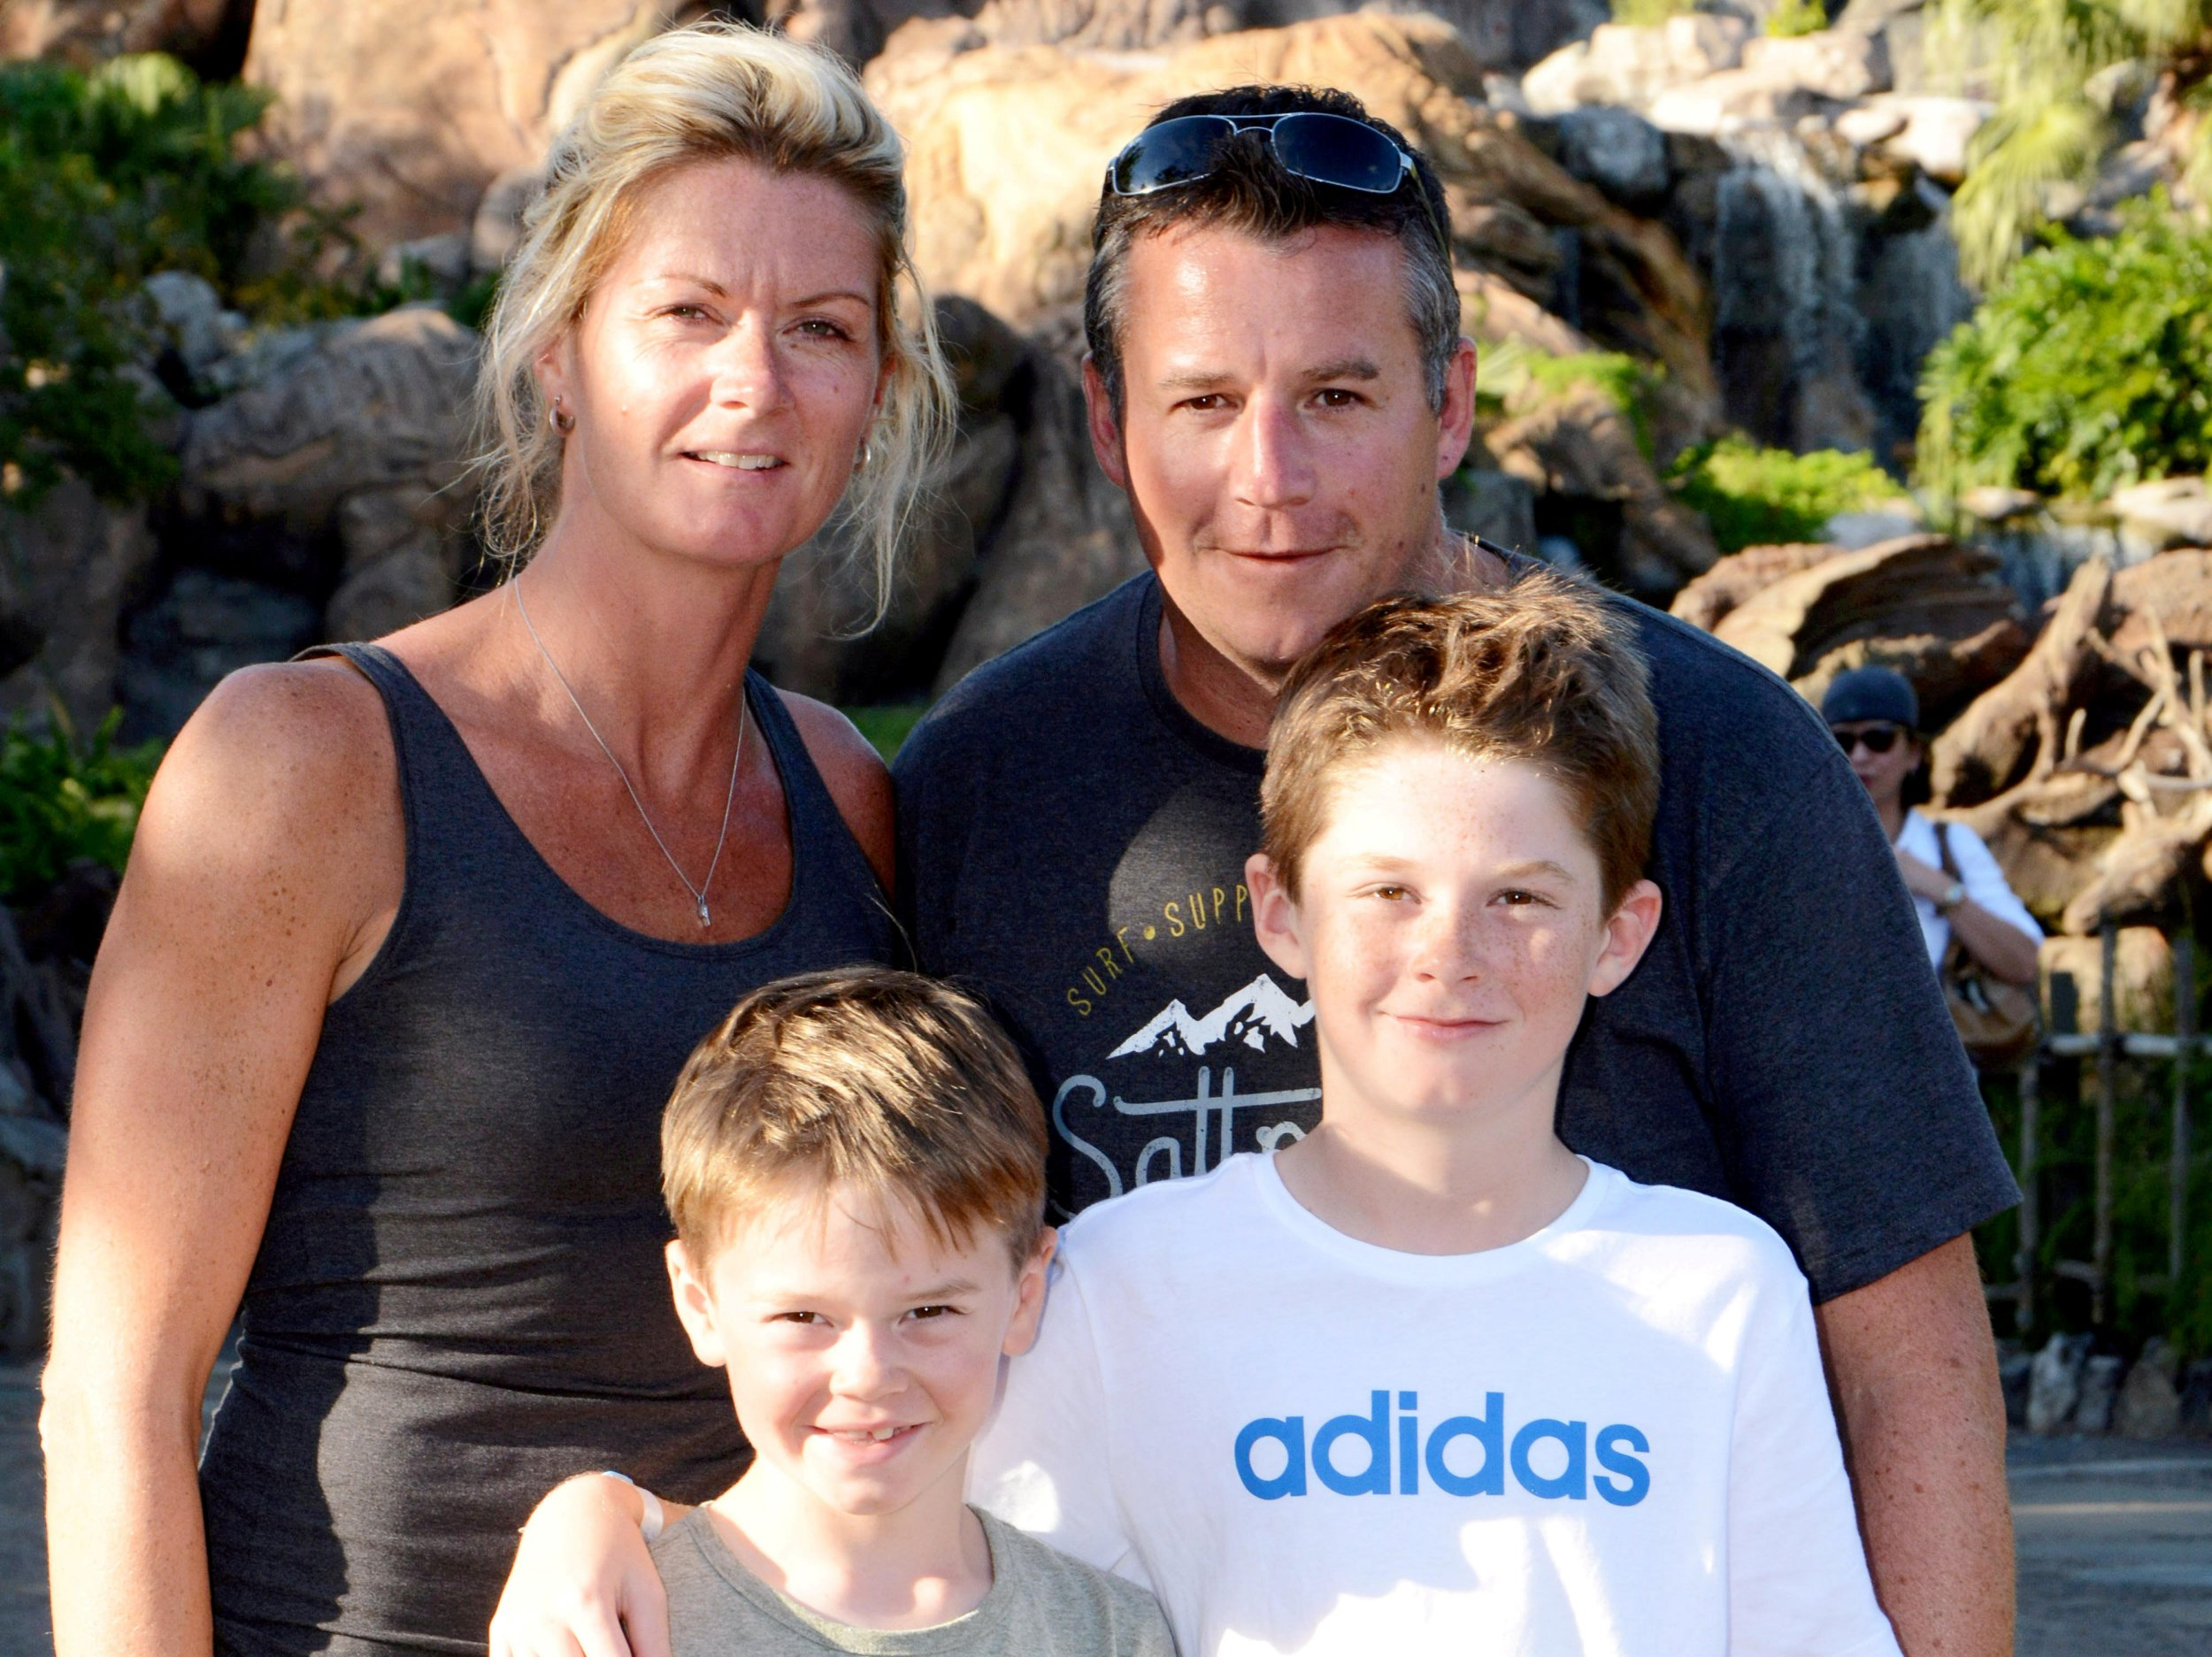 Simon and Kelly Stabb, with sons Jake & Luke. A policewoman has launched a ?200,000 fundraiser as part of a desperate bid to prolong her life for the sake of her children. See SWNS story SWFUND. Kelly Stabb, 39, was diagnosed with stage four bowel cancer in January 2017 and was led to believe her cancer was curable. But in February this year the mum-of-two was told the cancer had spread to other parts of her body. Until last week she had accepted her fate that she wouldn?t get to see her boys Jake, 10, and Luke, eight, grow into men or one day possibly enjoy becoming a grandparent with her husband Simon. Now a glimmer of hope exists thanks to a new drug trial, but as Kelly doesn?t meet its strict criteria she is having to find the ?200,000 it will cost to receive it as it is not available for her cancer on the NHS. Kelly, from Paignton, Devon, has already proved she is a good fundraiser having raised ?35,000 in just eight months for Bowel Cancer West (BCW) to try and help and support those who try to detect, cure and prevent the disease. Of the money raised, ?5,000 was also donated to the Ricky Grant Unit at Torbay Hospital. What she never expected was to find herself at the centre of a fundraising campaign in an attempt to prolong the precious time she has left with her boys.